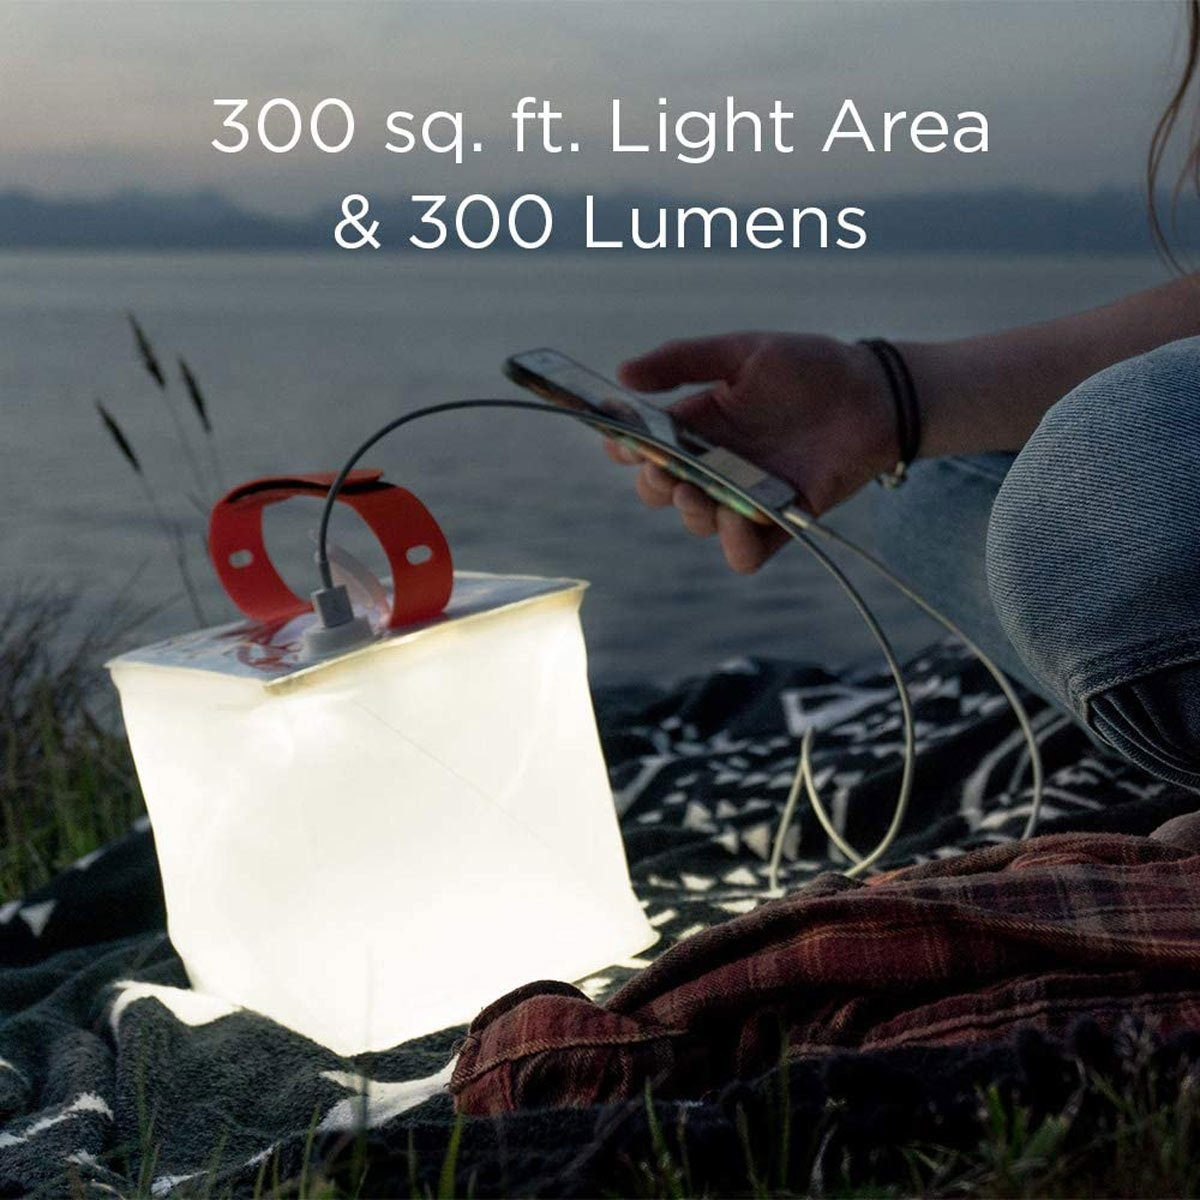 two in one lanter and camping phone charger